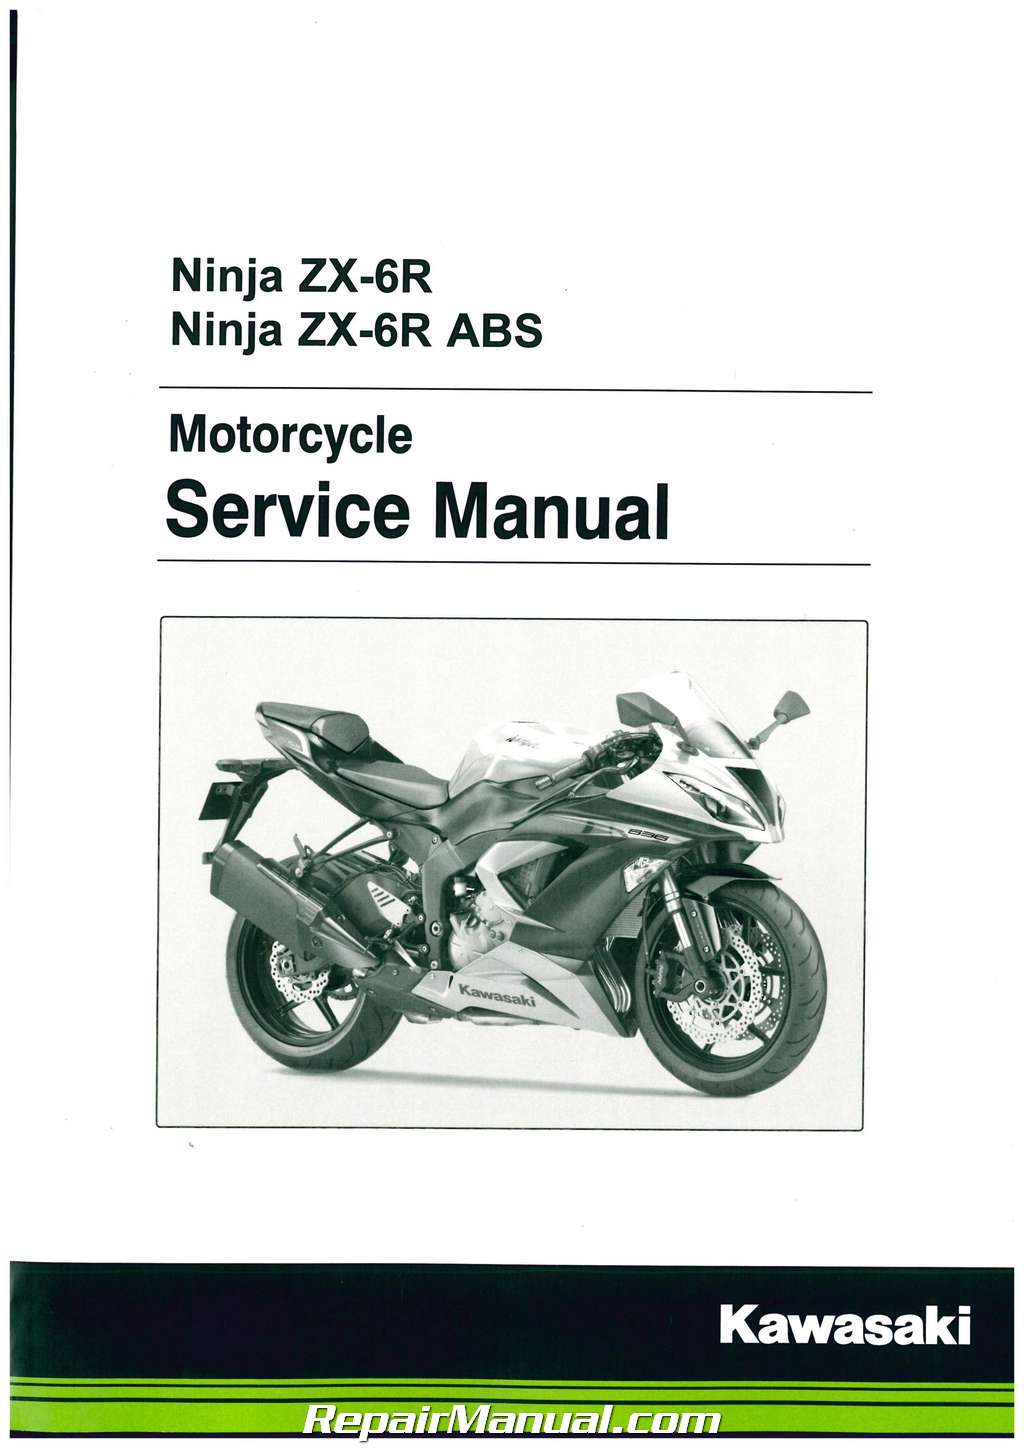 2003 Kawasaki Ninja 636 Service Manual Various Owner Guide 03 Wiring Diagram 2013 2015 Zx636e F 600 Zx 6r Abs Motorcycle Rh Repairmanual Com Zx6r Owners Stunt Build